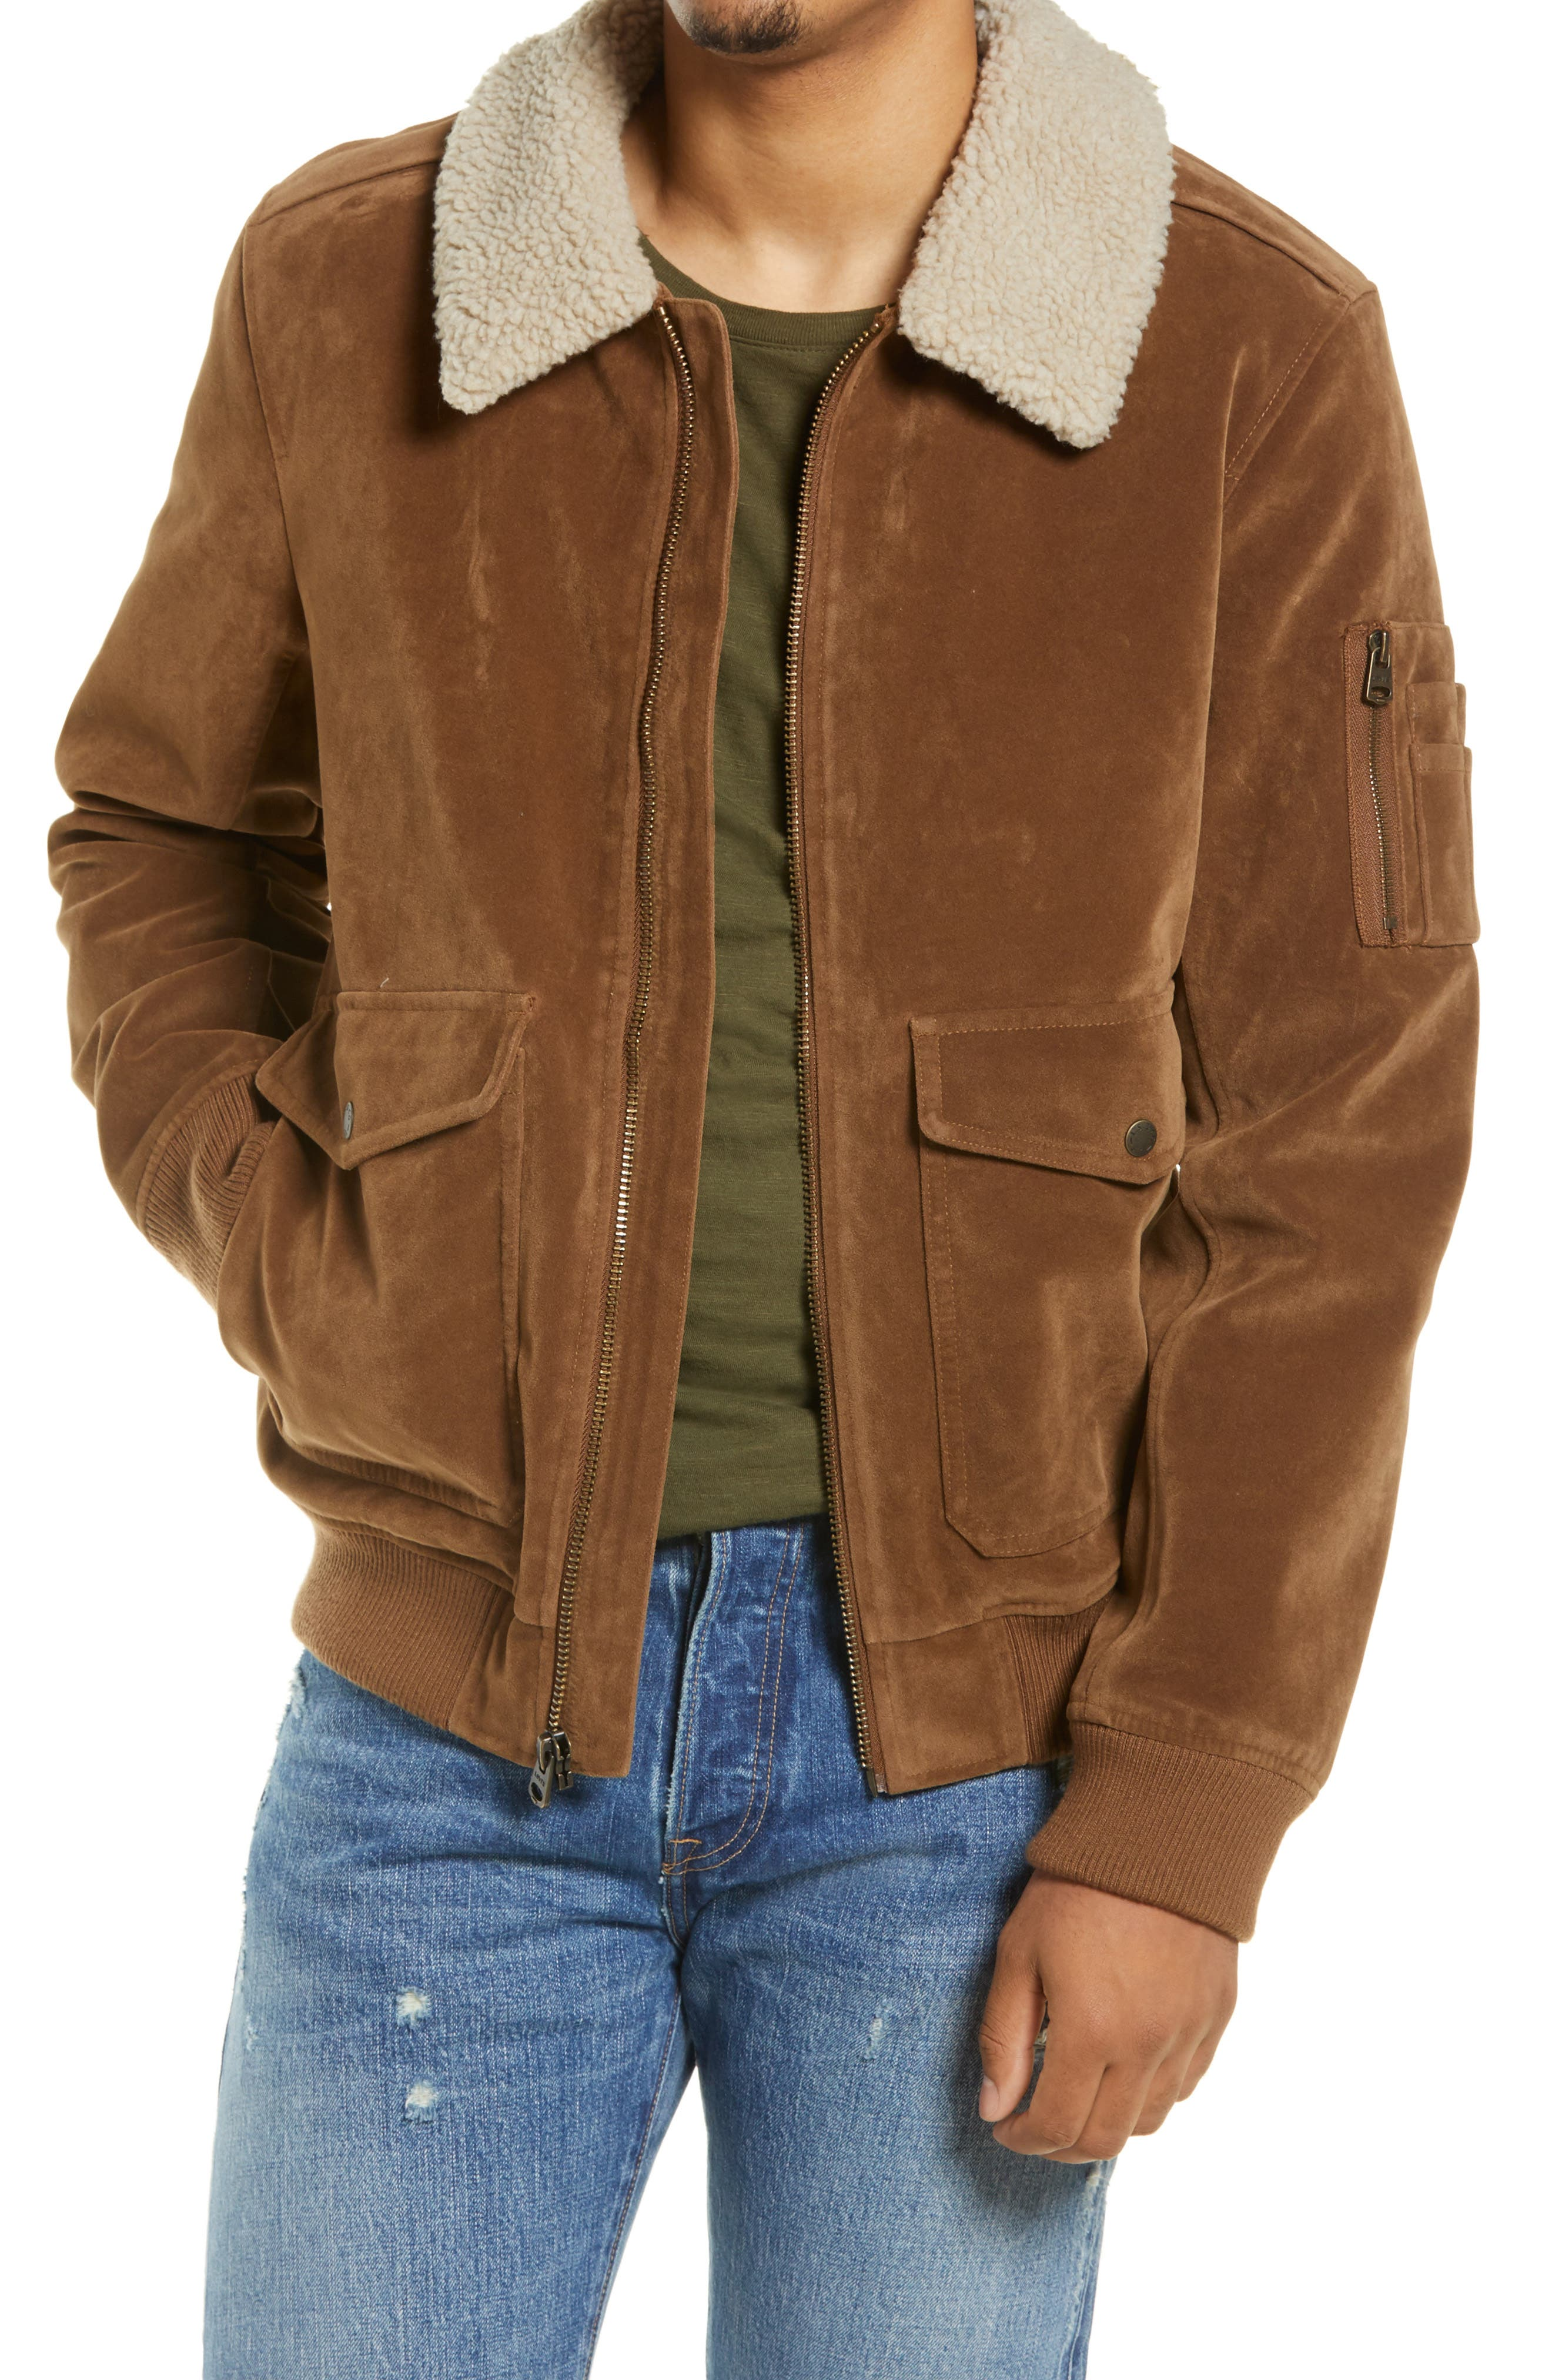 70s Jackets, Furs, Vests, Ponchos Mens Levis Faux Suede Aviator Bomber Jacket With Removable Faux Shearling Collar Size Large - Brown $200.00 AT vintagedancer.com